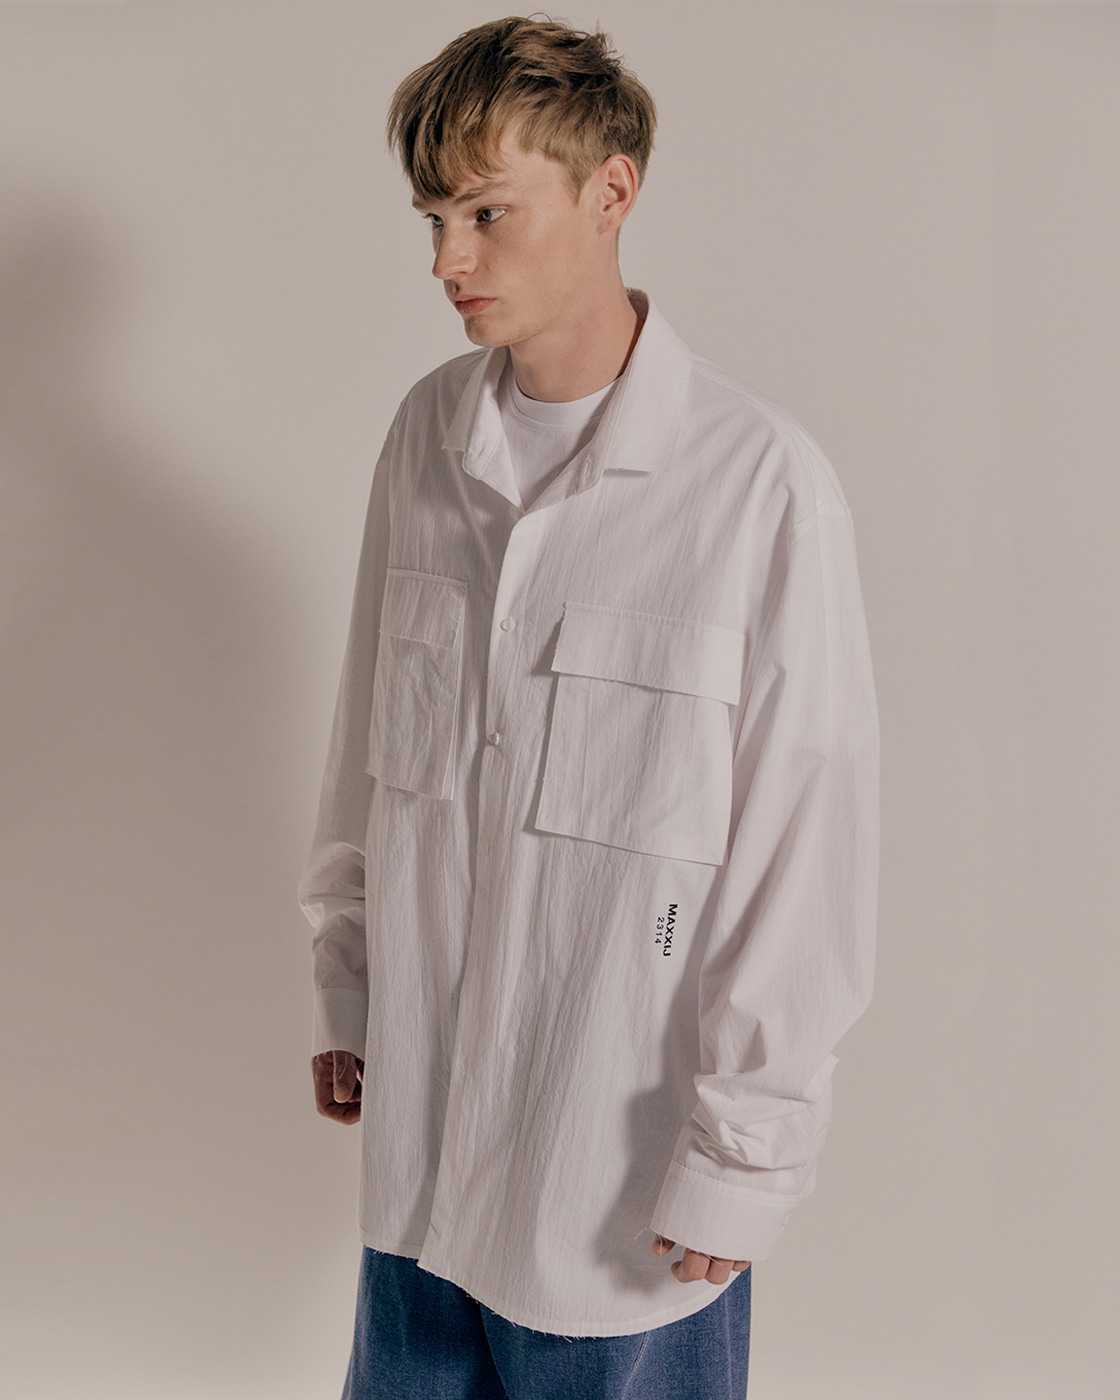 Black Logo Play White Oversized Shirt